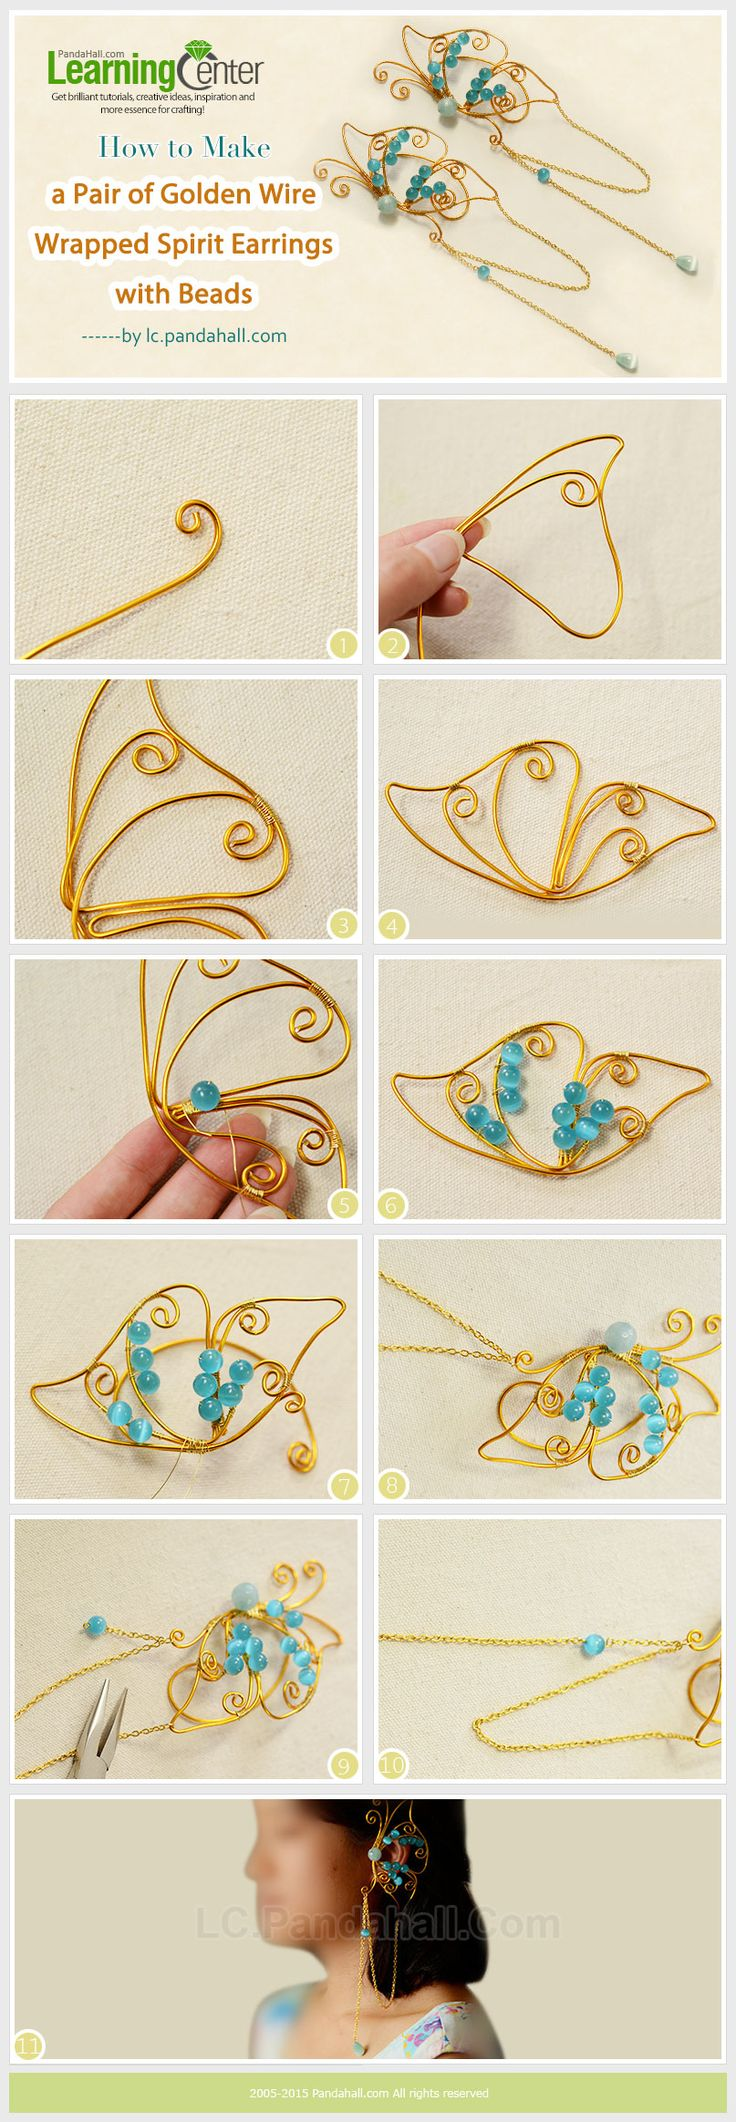 597 best Wire Wrapped Earrings images on Pinterest | Necklaces, Ear ...